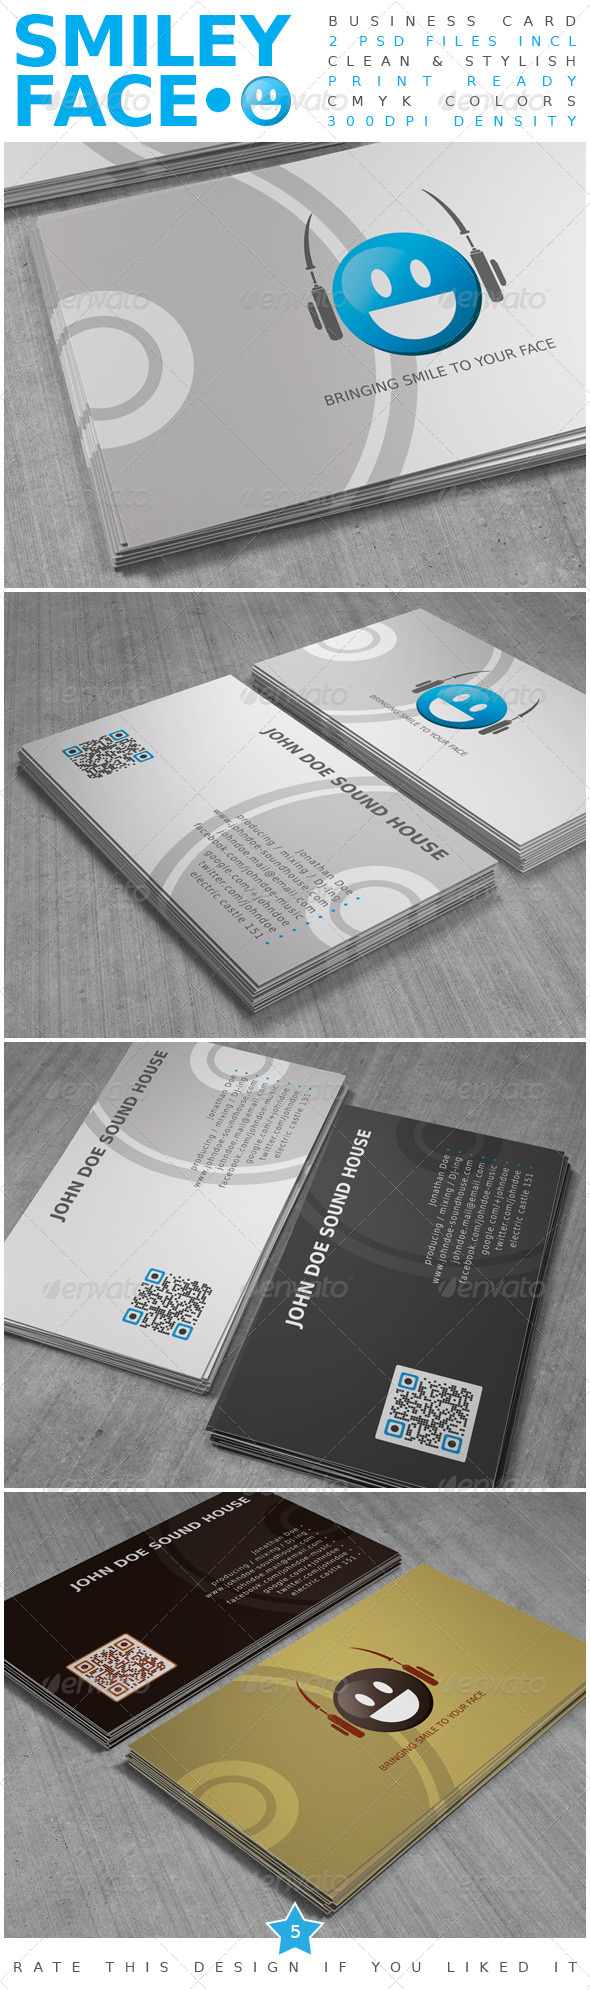 Smiley Face Business Card - Corporate Business Cards